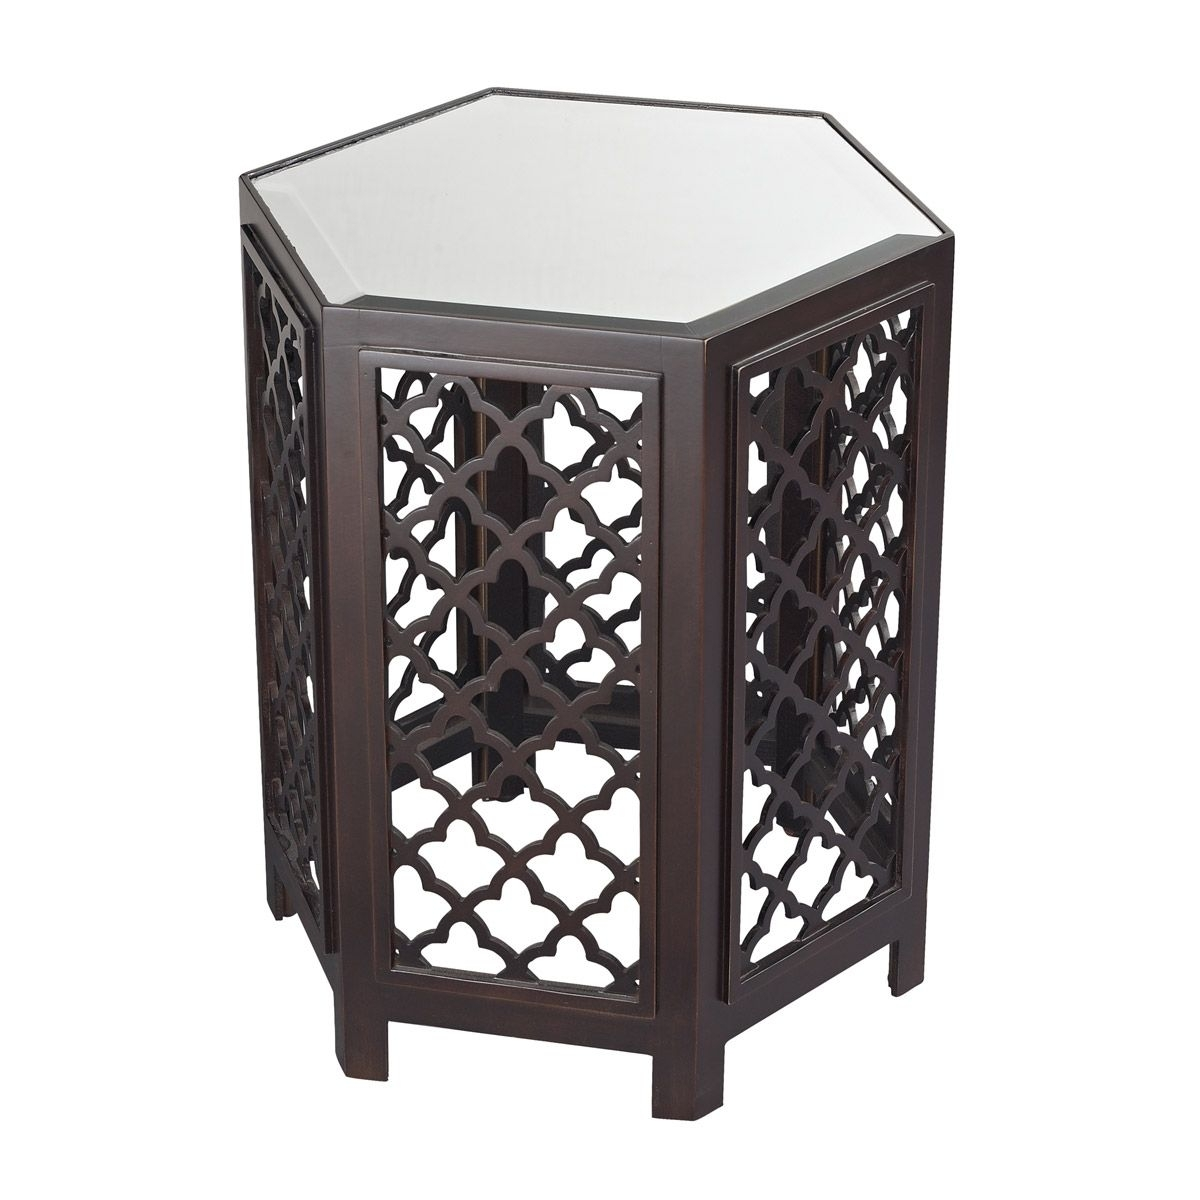 Marrakesh-Moorish Pattern Side Table With Mirrored Top | Sterling intended for Marrakesh Side Tables (Image 23 of 30)